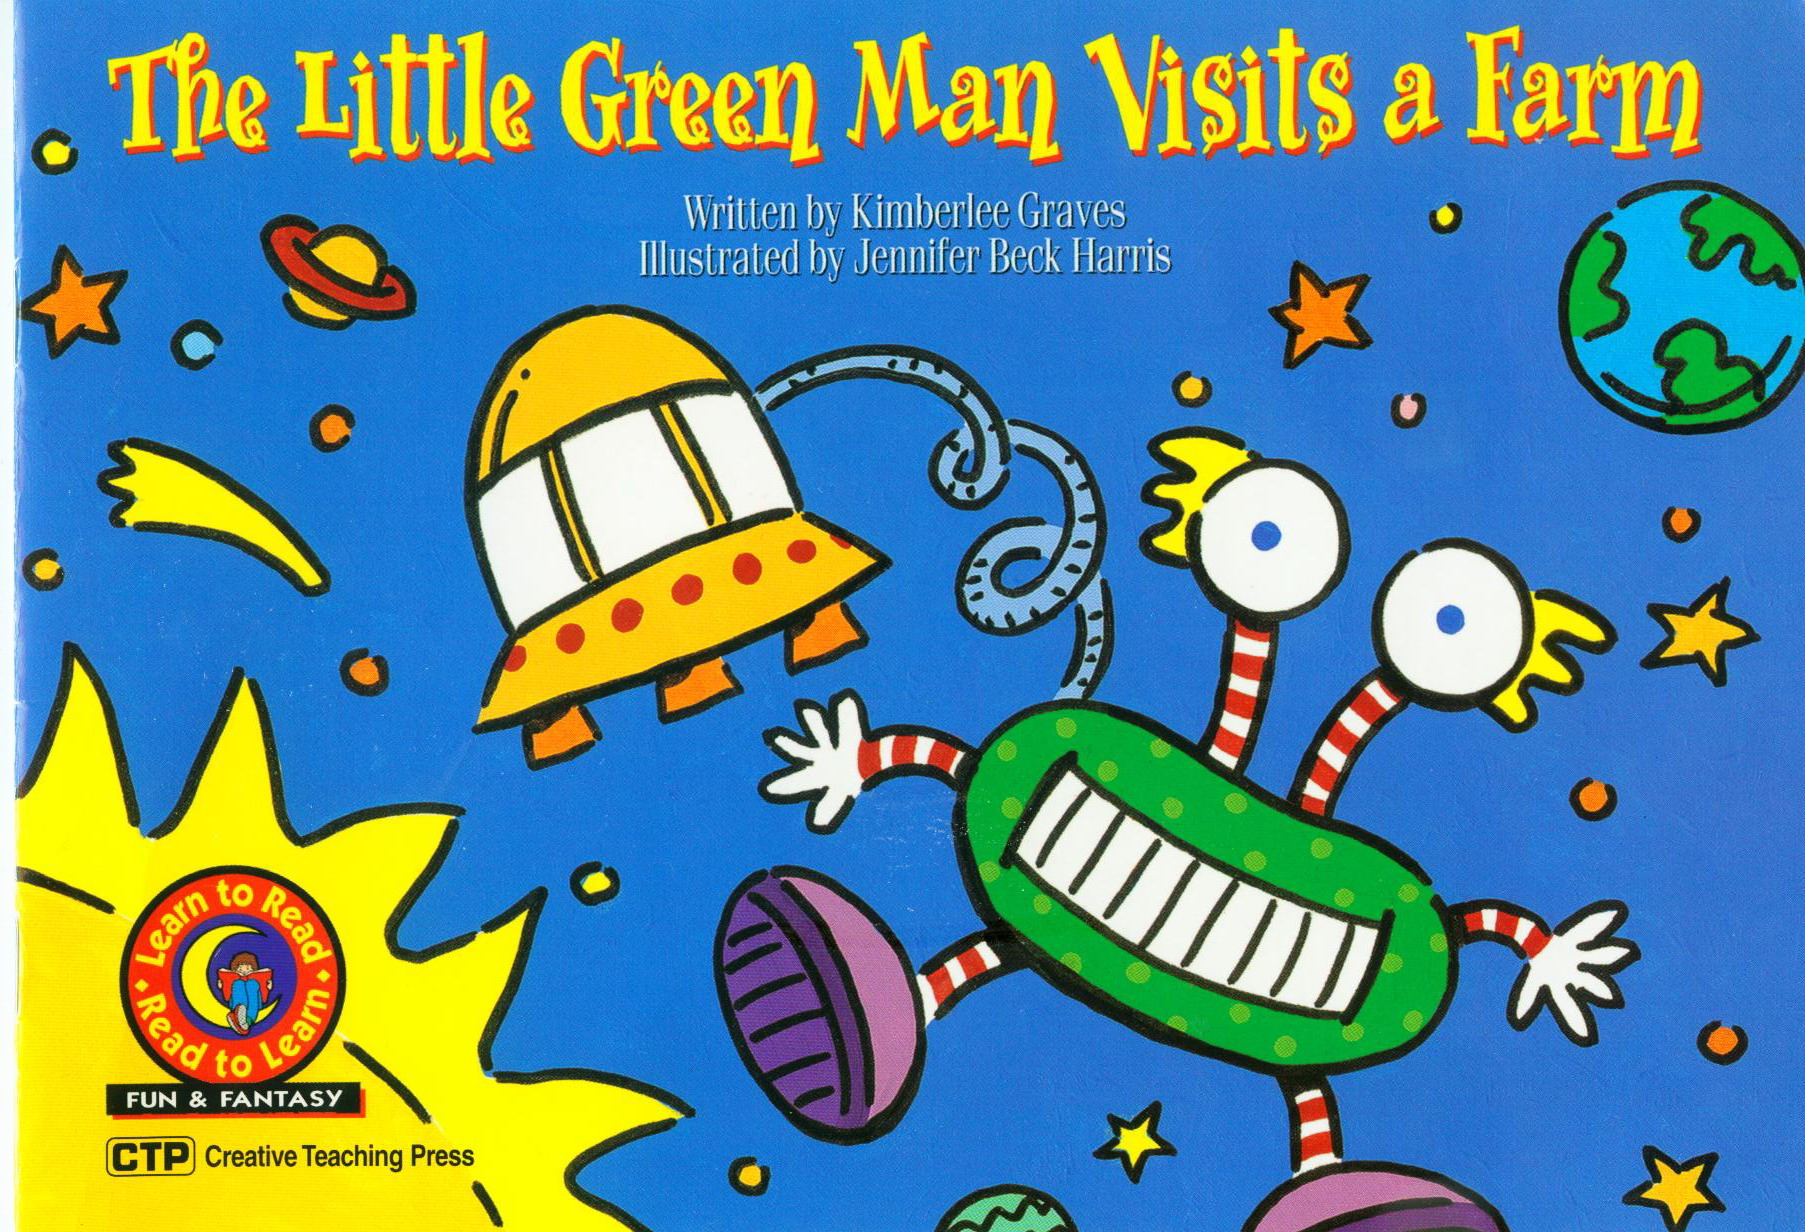 The Little Green Man Visits a Farm